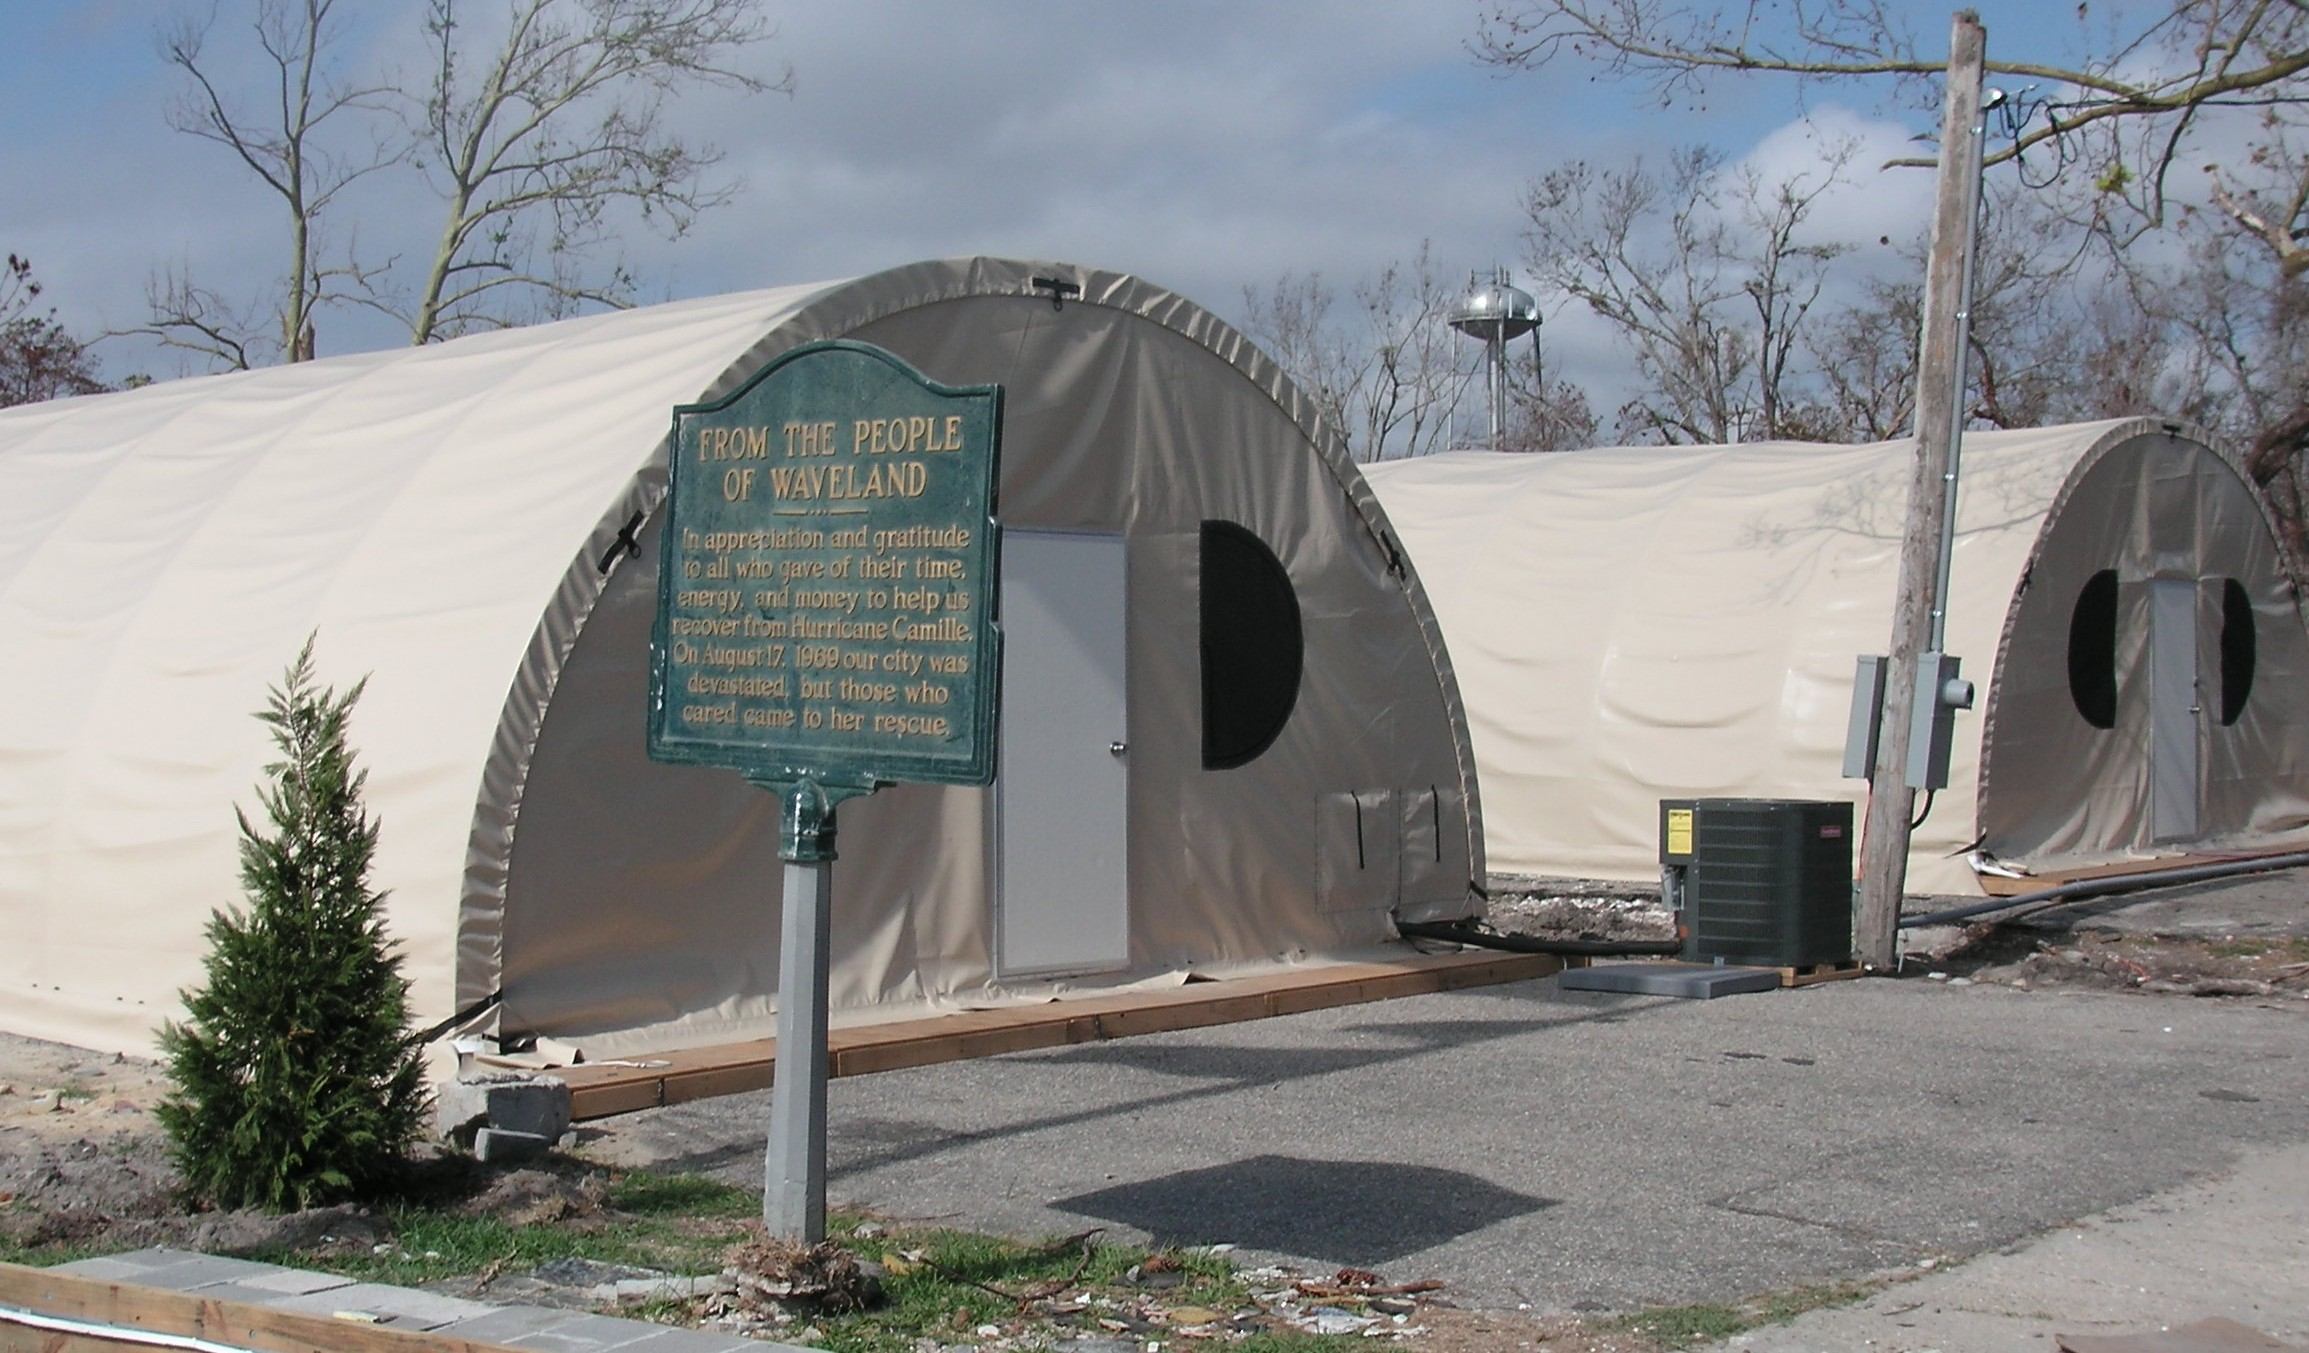 17. Photo shows the temporary city hall erected in Waveland just weeks after Hurricane Katrina.